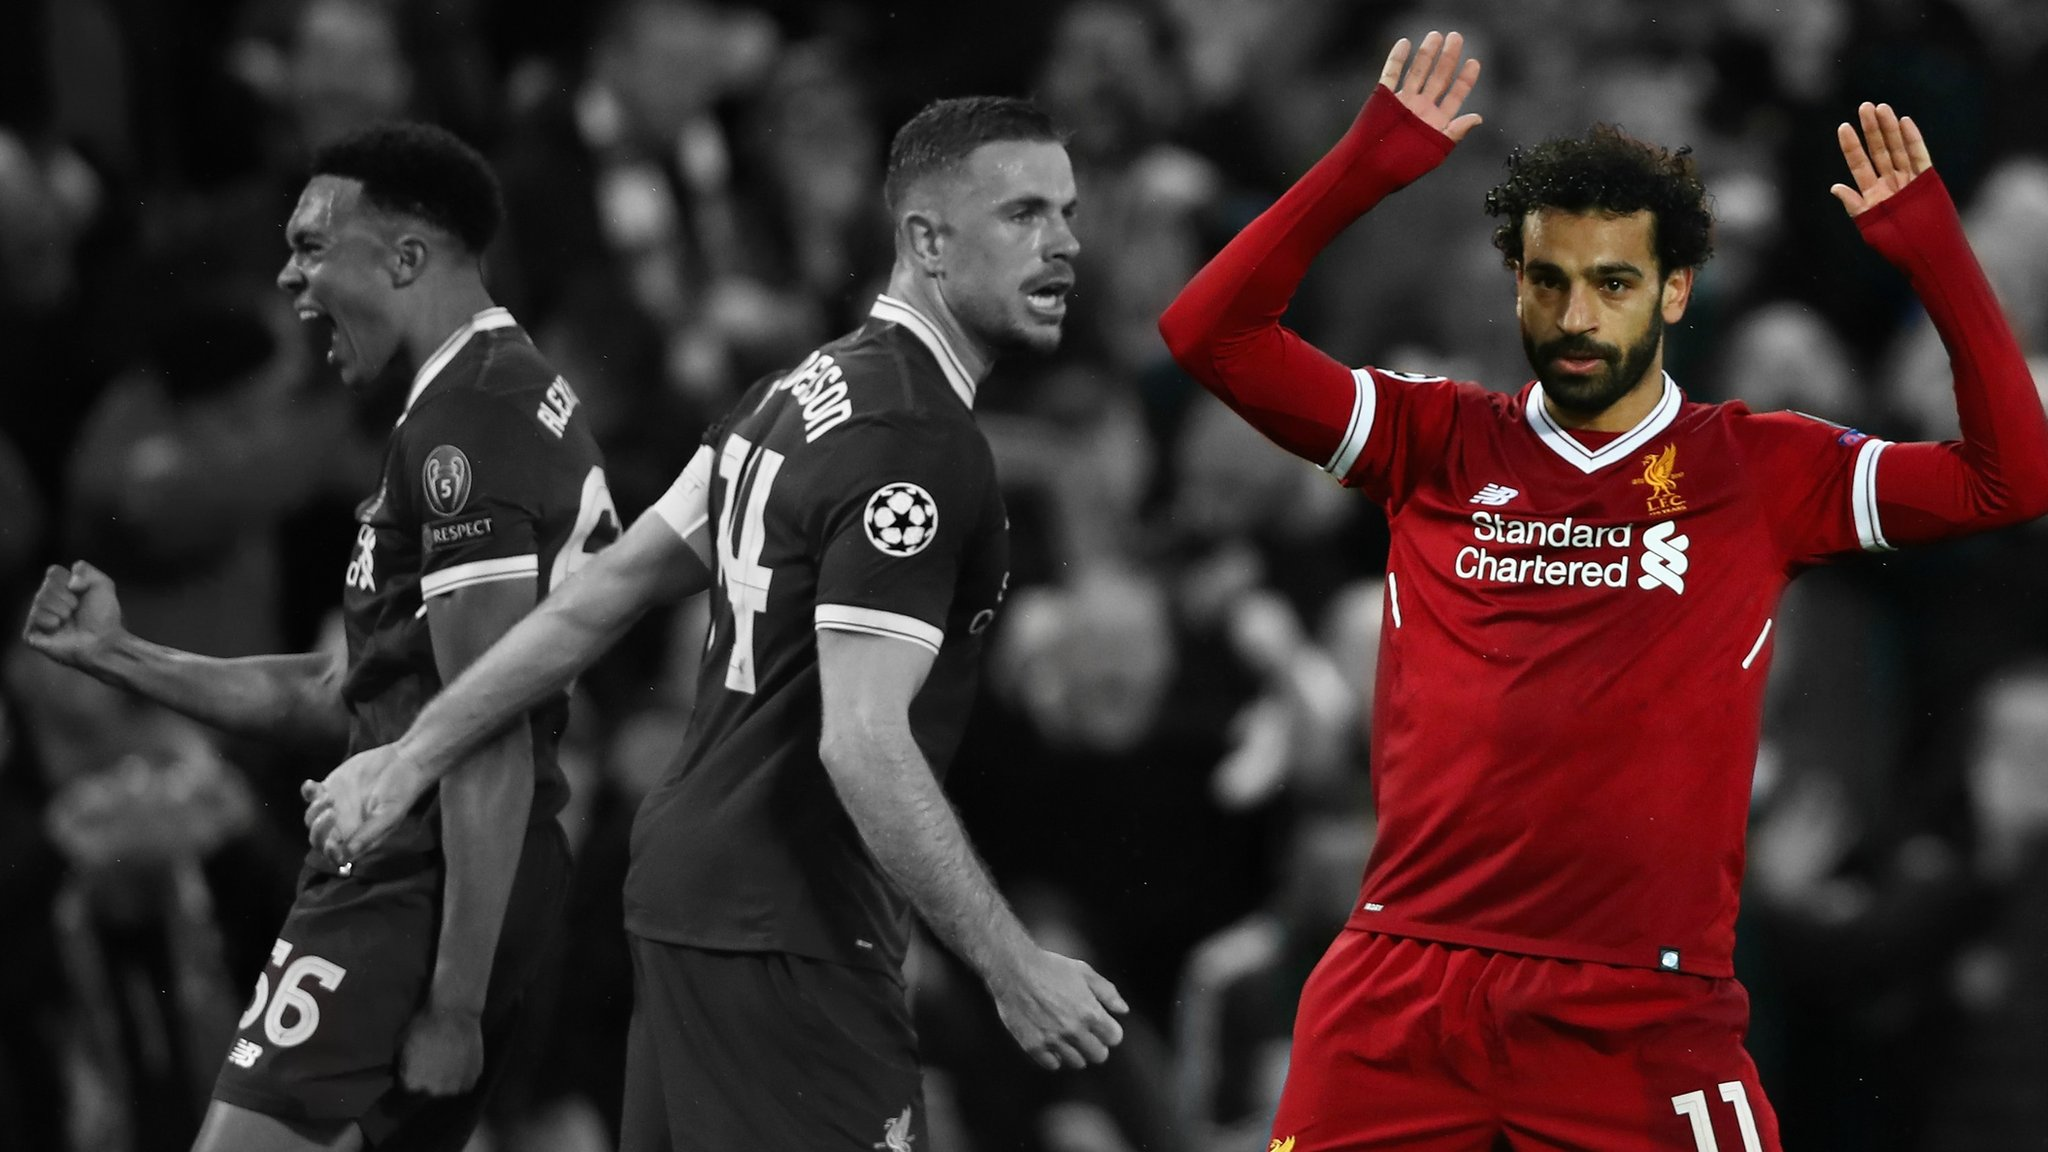 'Give him the Ballon d'Or now' - the night Salah wowed Europe